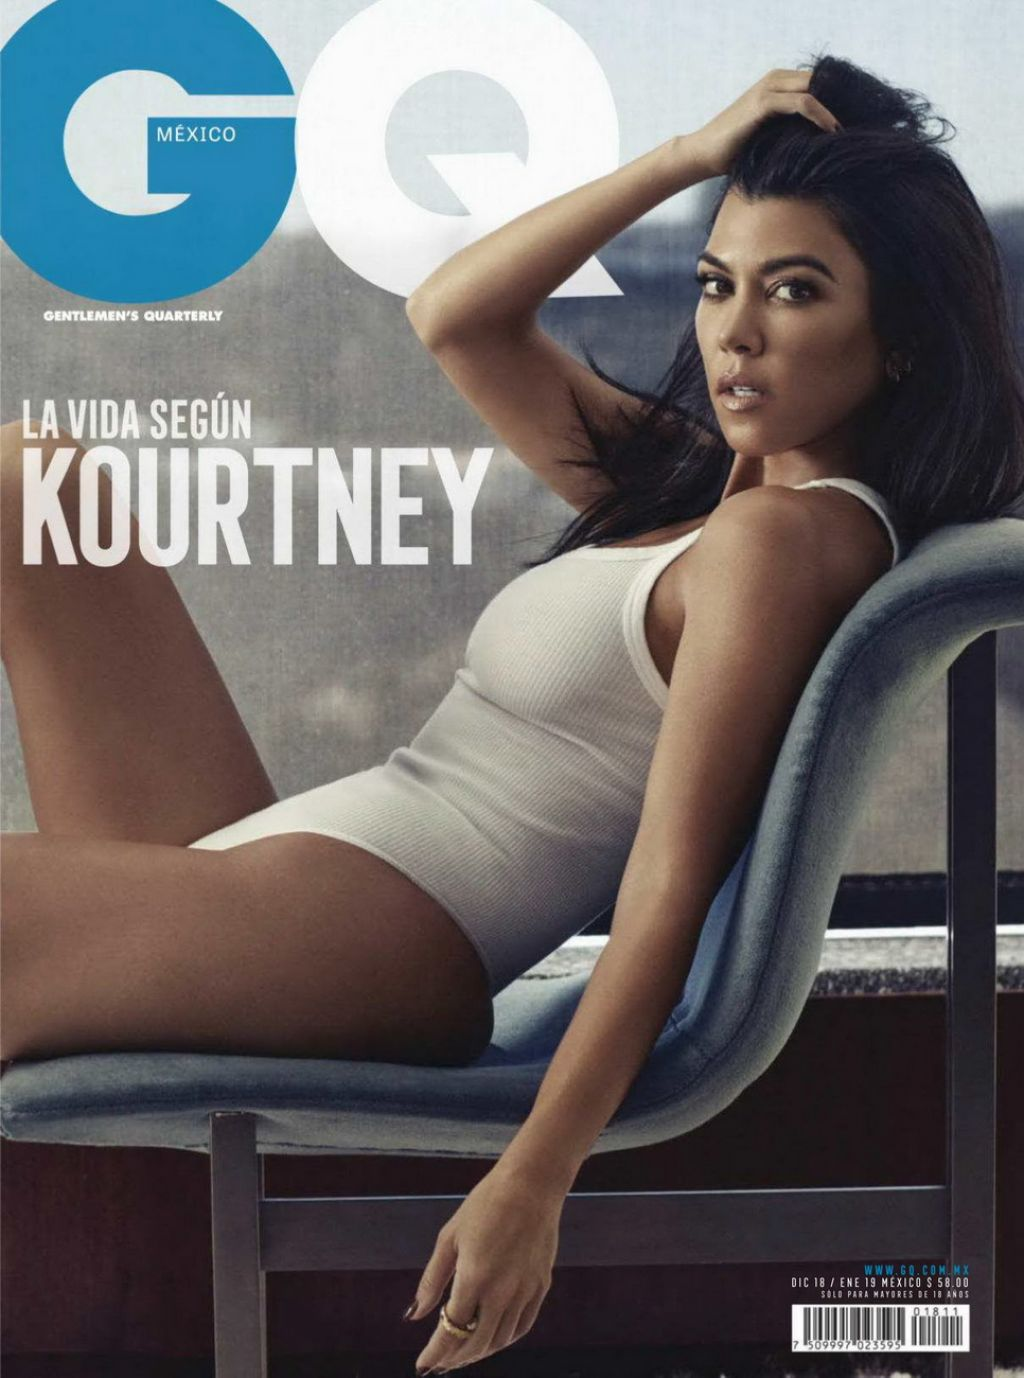 kourtney-kardashian-gq-magazine-mexico-december-2018-issue-0.jpg